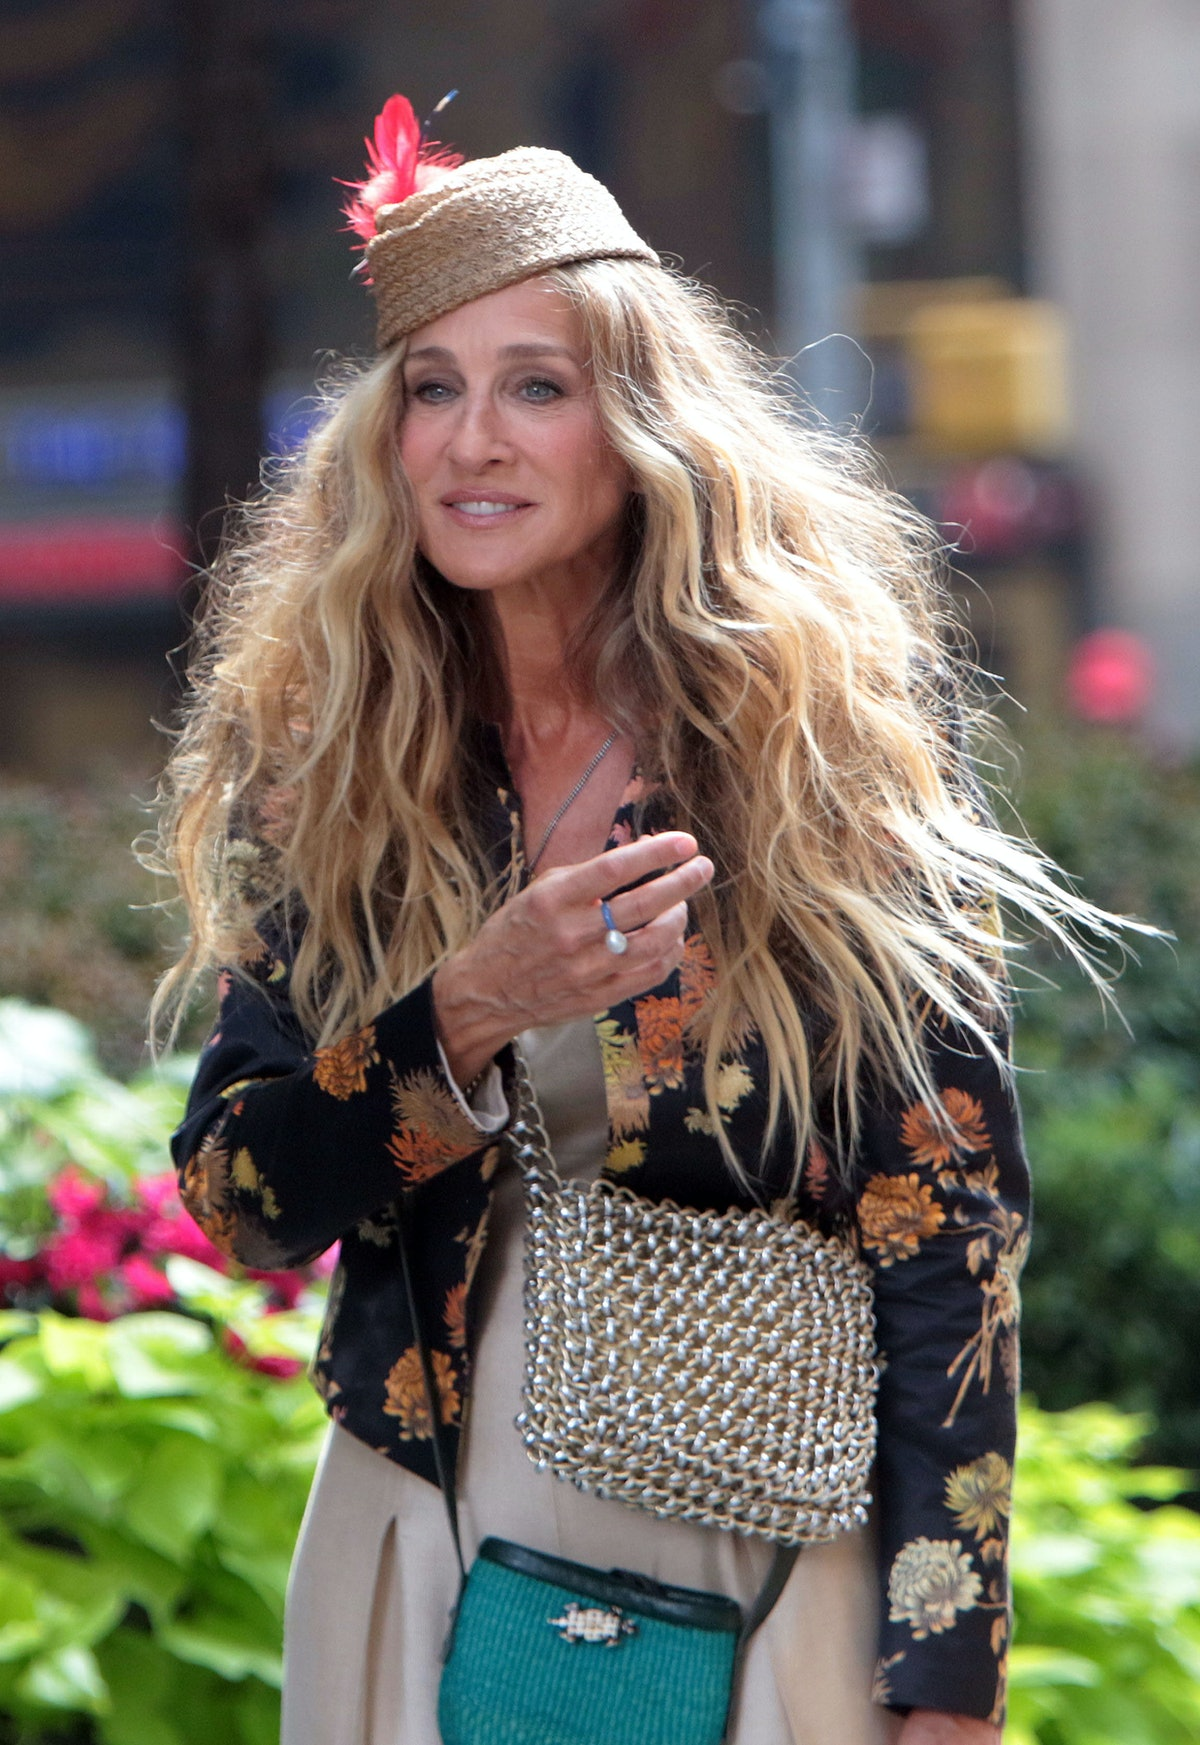 Sarah Jessica Parker photographed in an embroidered jacket and chainmail bag while on set for And Ju...